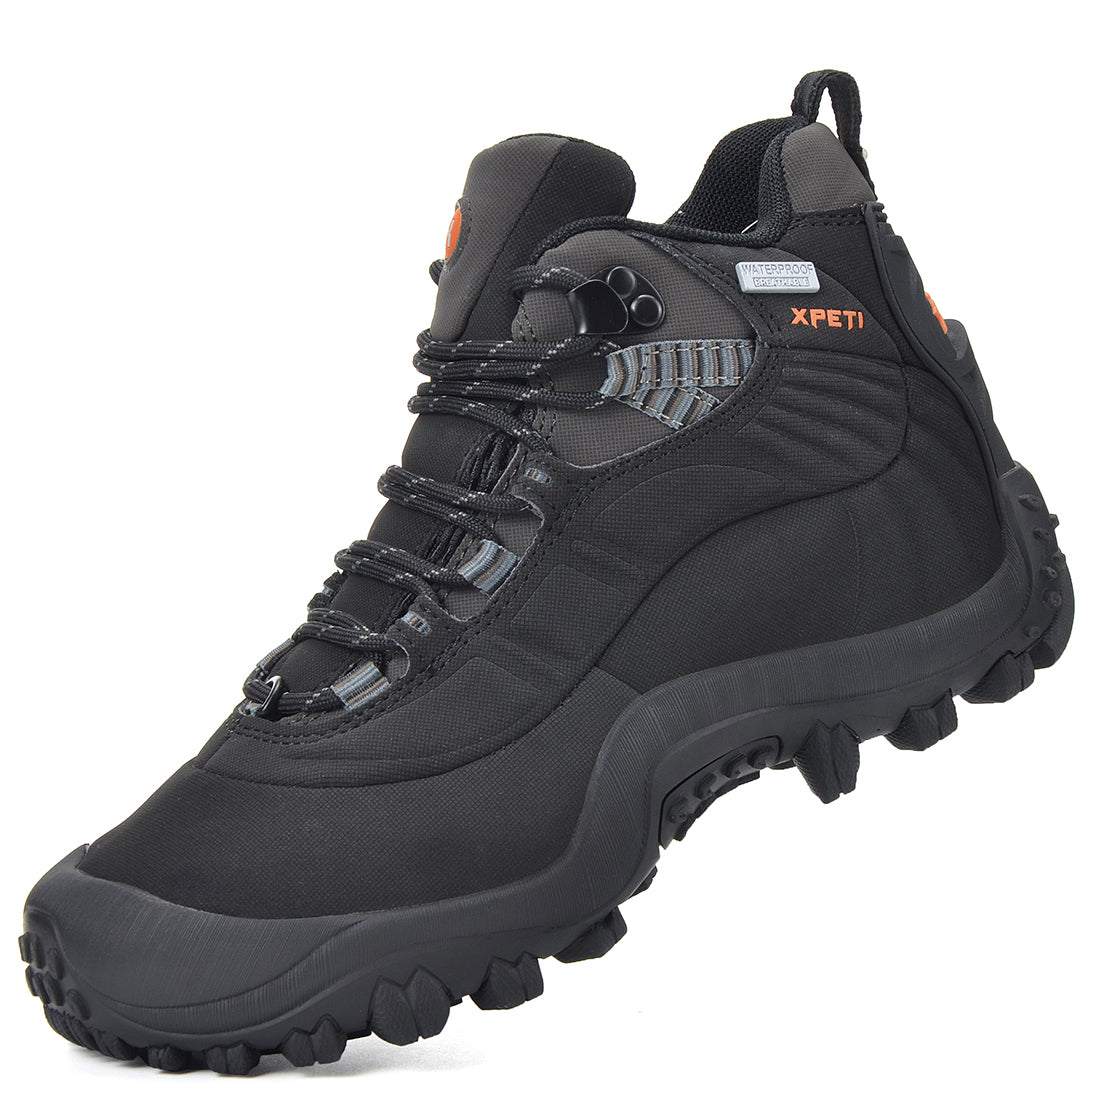 XPETI Thermador Men's Waterproof Mid Rise Hiking Boots